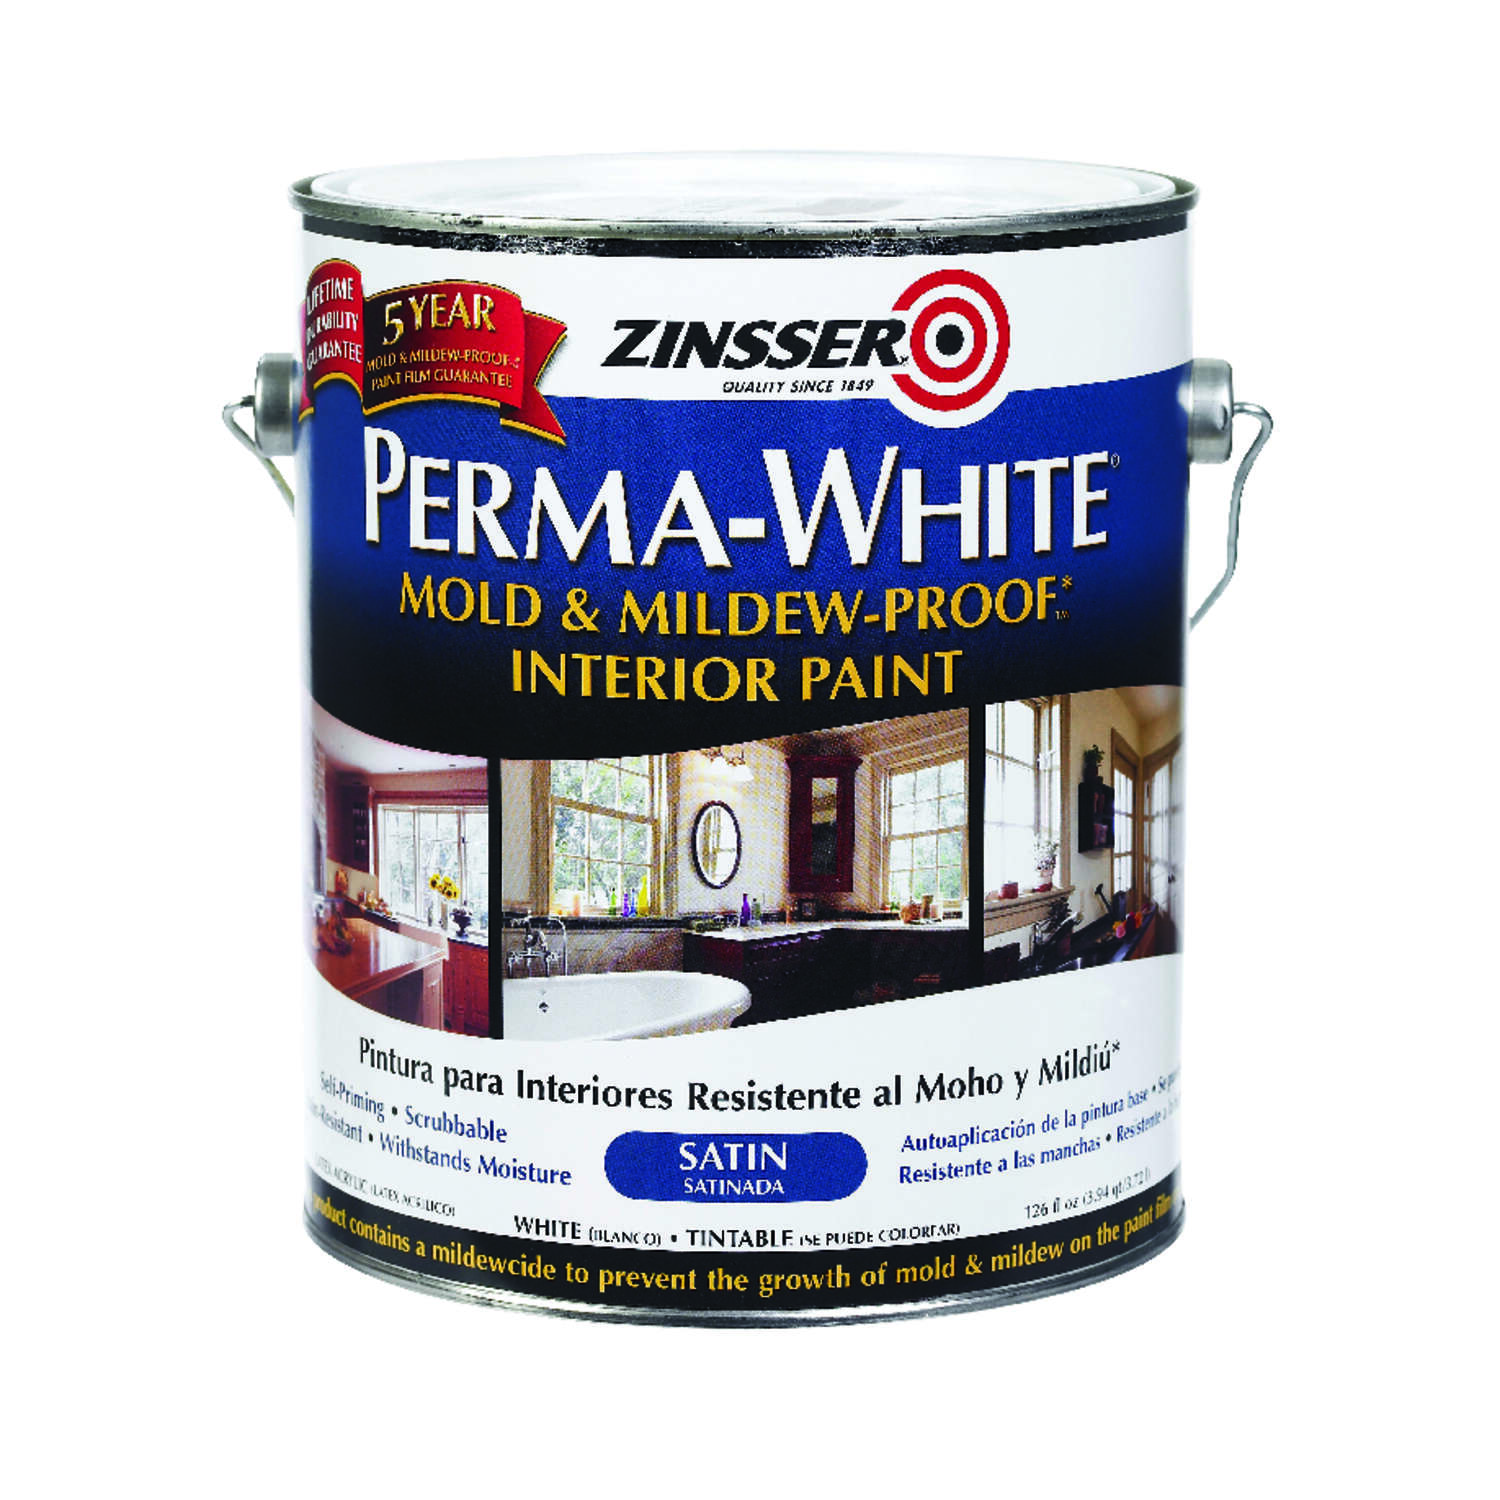 Zinsser  Perma-White  Satin  White  Water-Based  Mold and Mildew-Proof Paint  Indoor  1 gal.